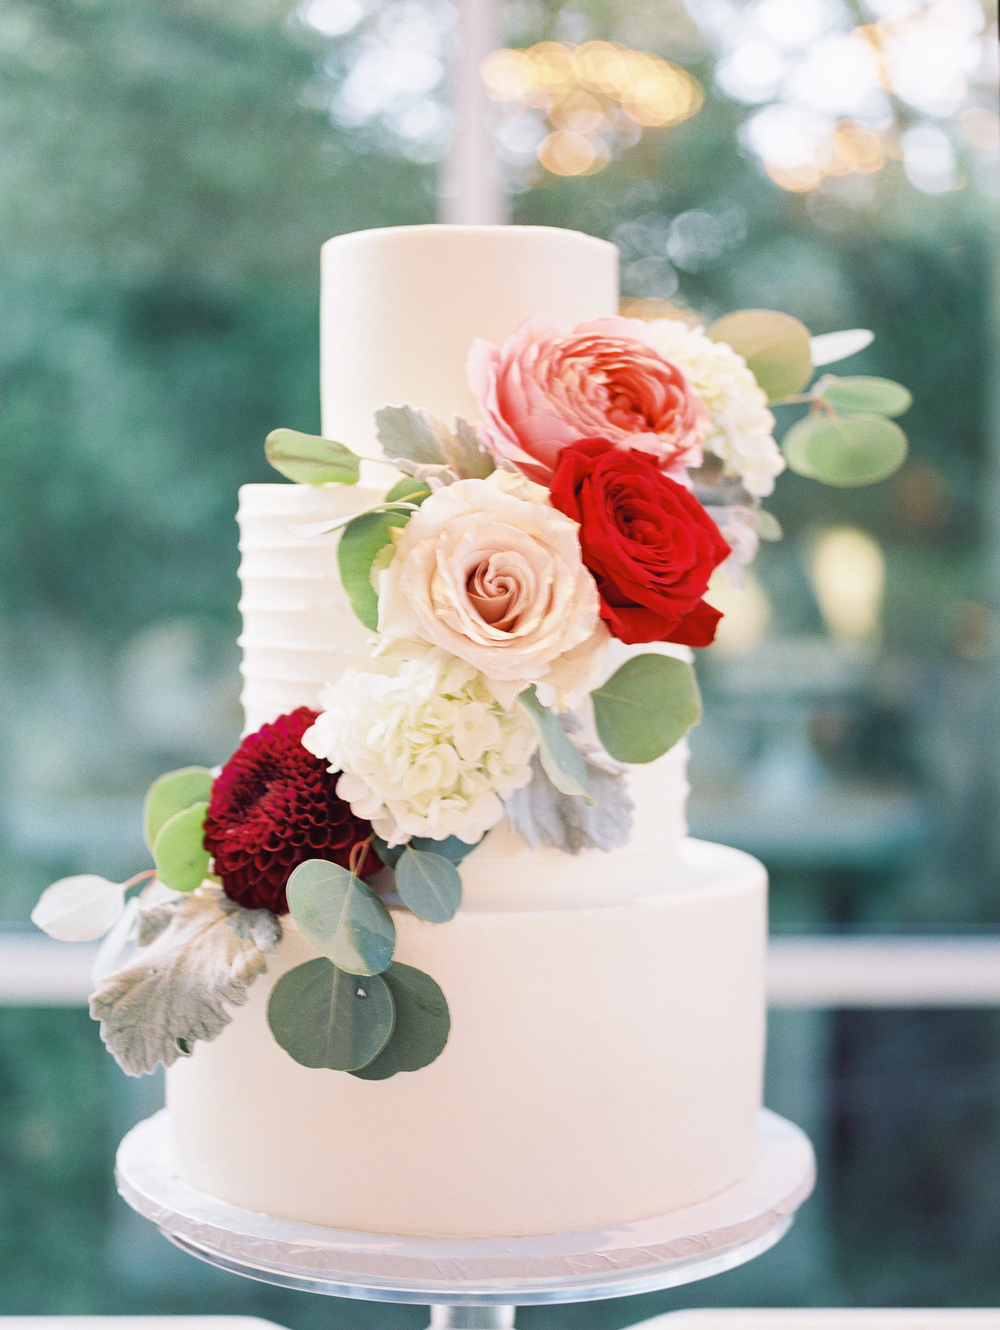 Fall Wedding Cake with Flowers